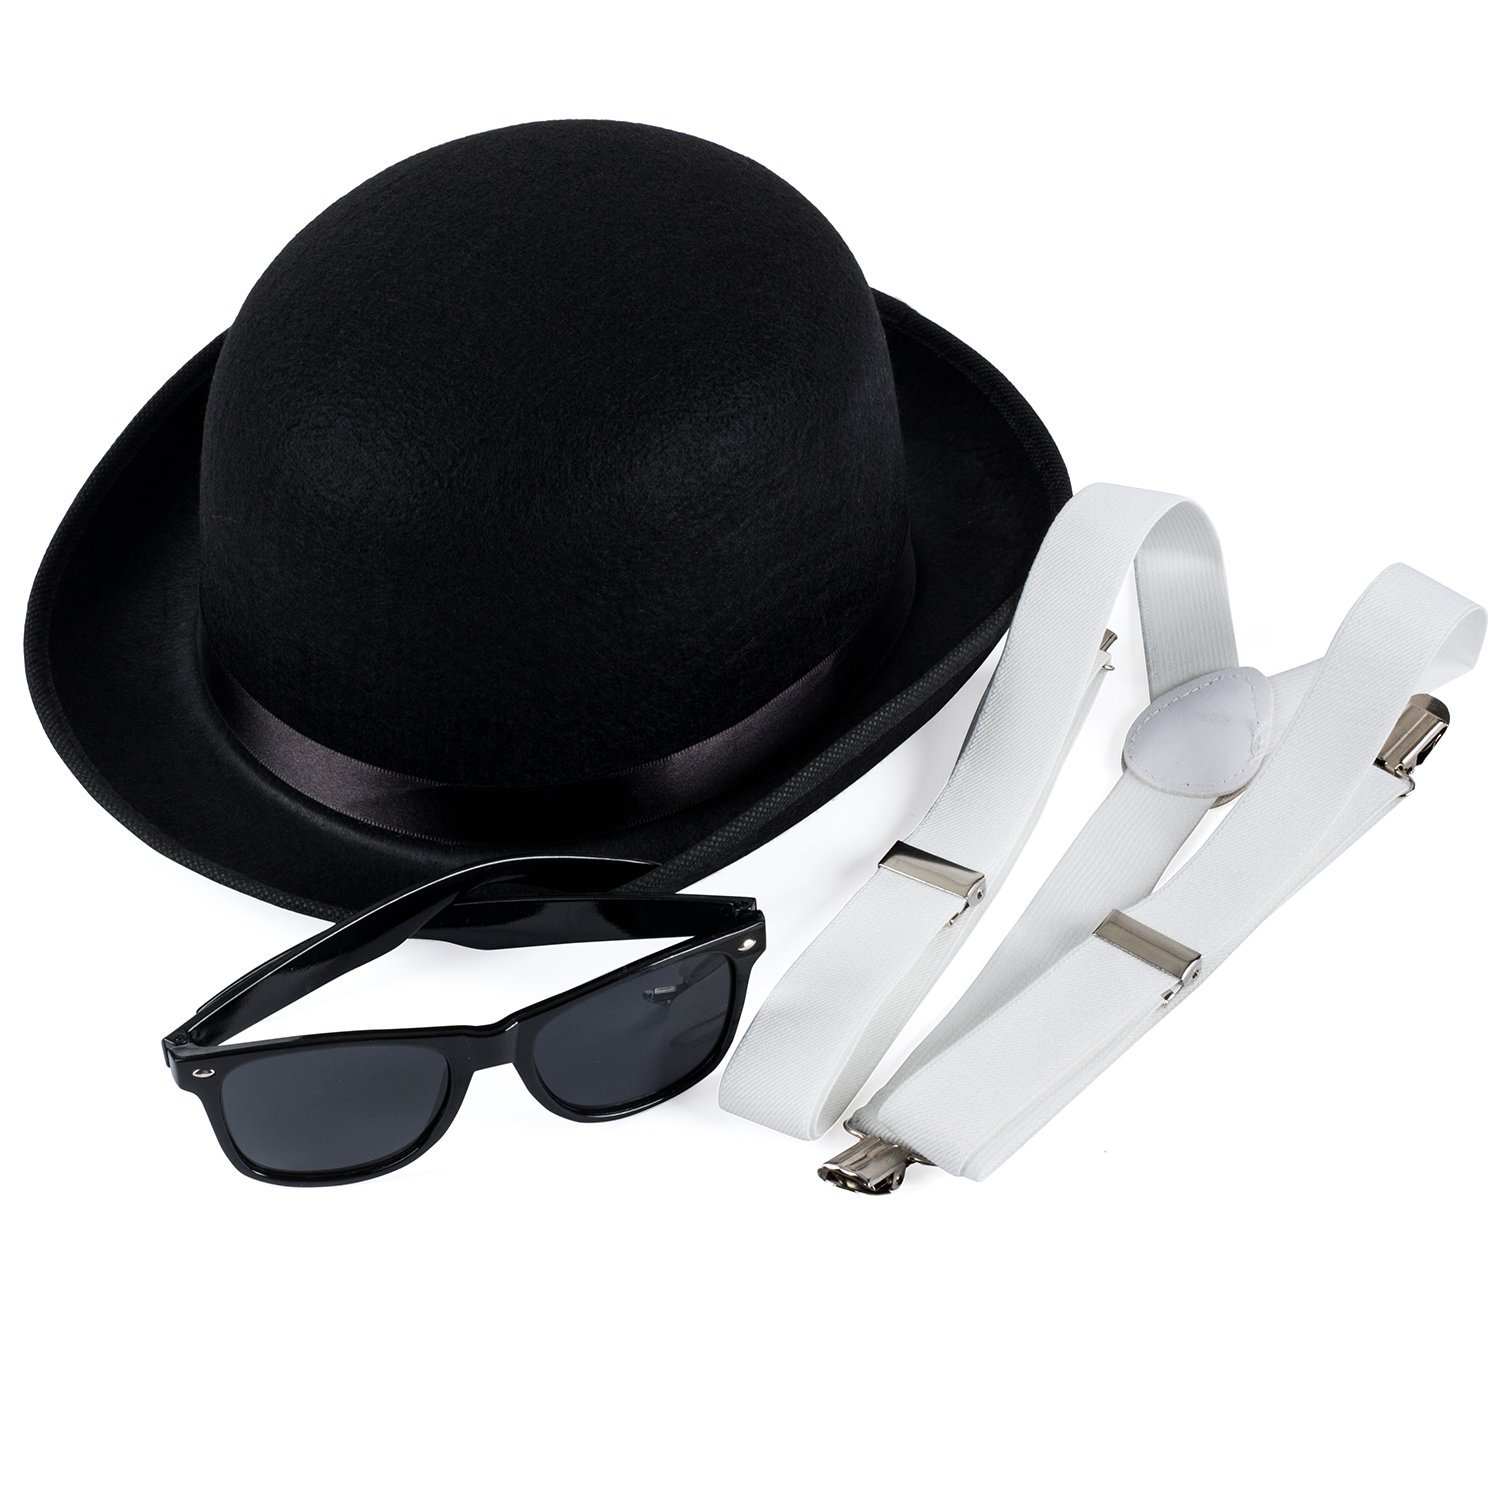 Funny Party Hats Gangster Accessories -3 Pc Set - Derby Hat, Suspenders Sunglasses - Roaring 20's Costume - Mobster Costume f-am220-am778-am807